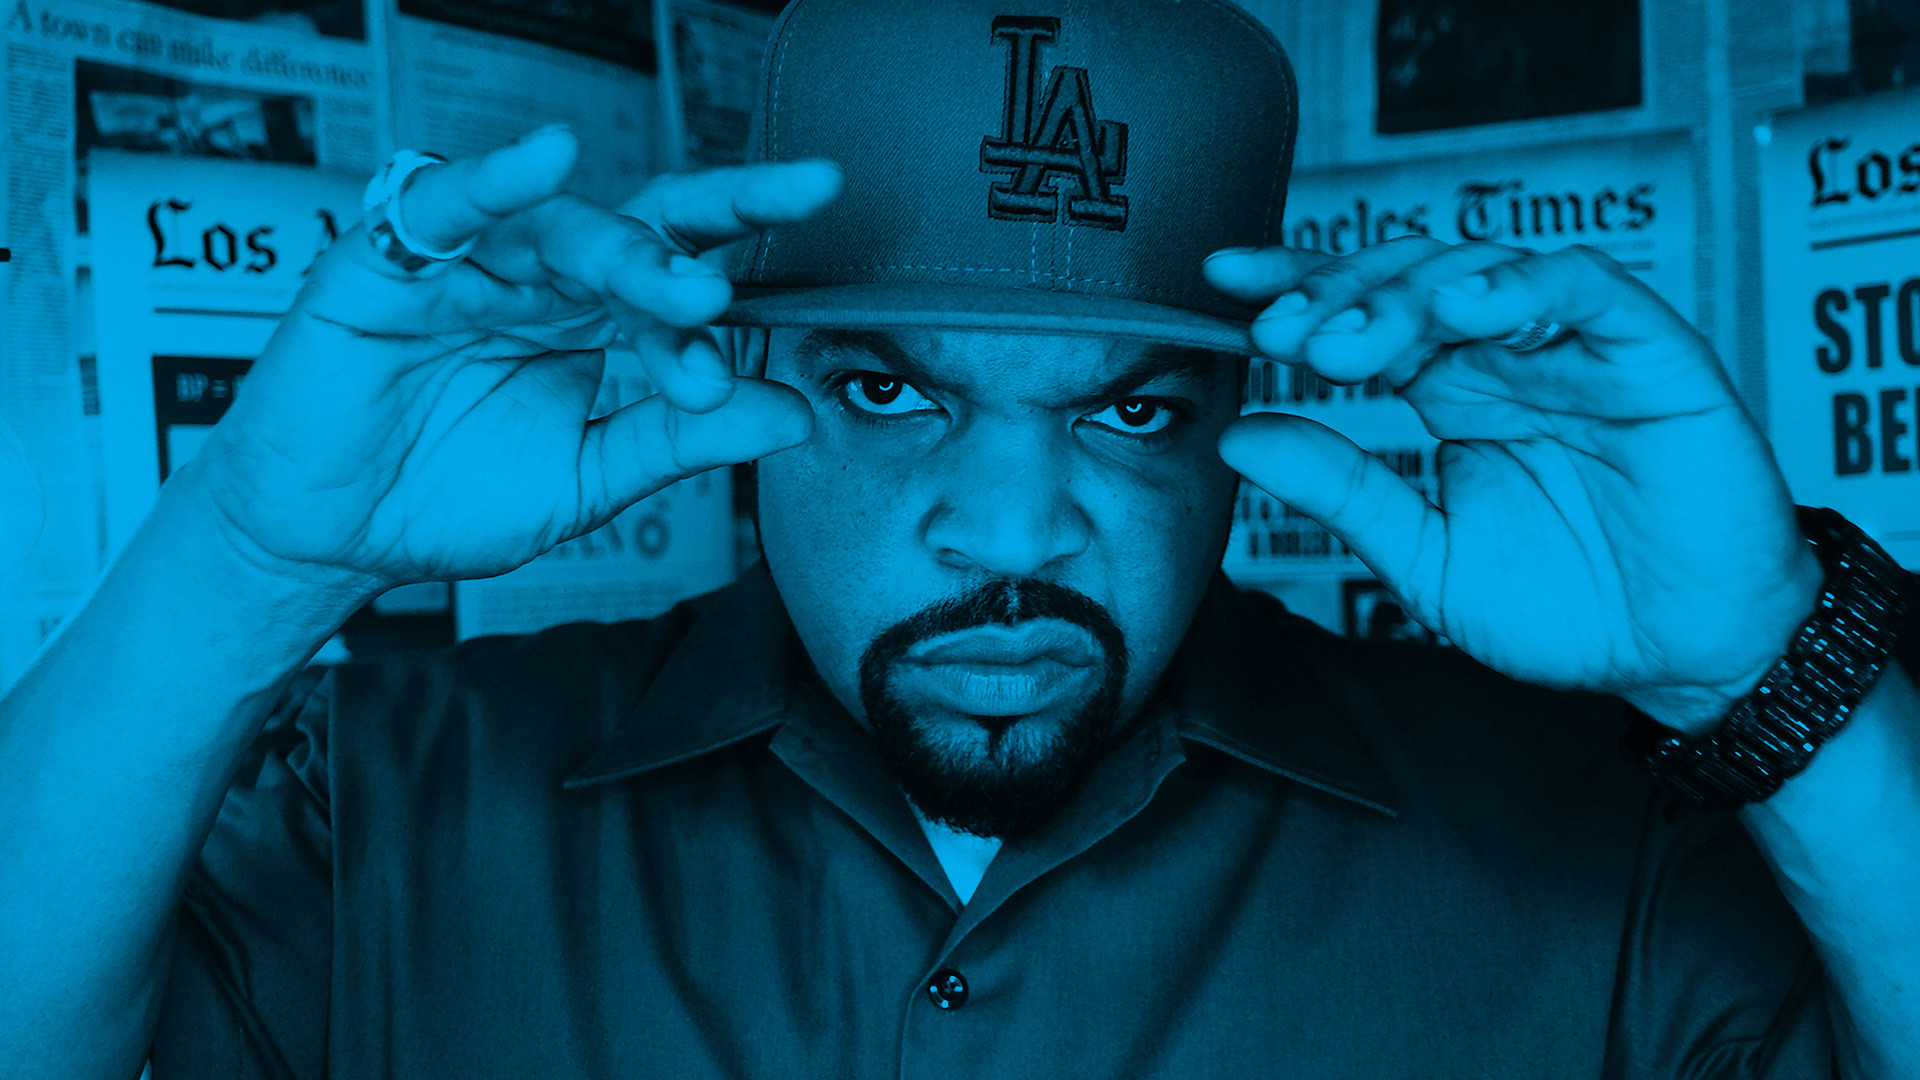 Ice Cube Wallpaper 71 Pictures